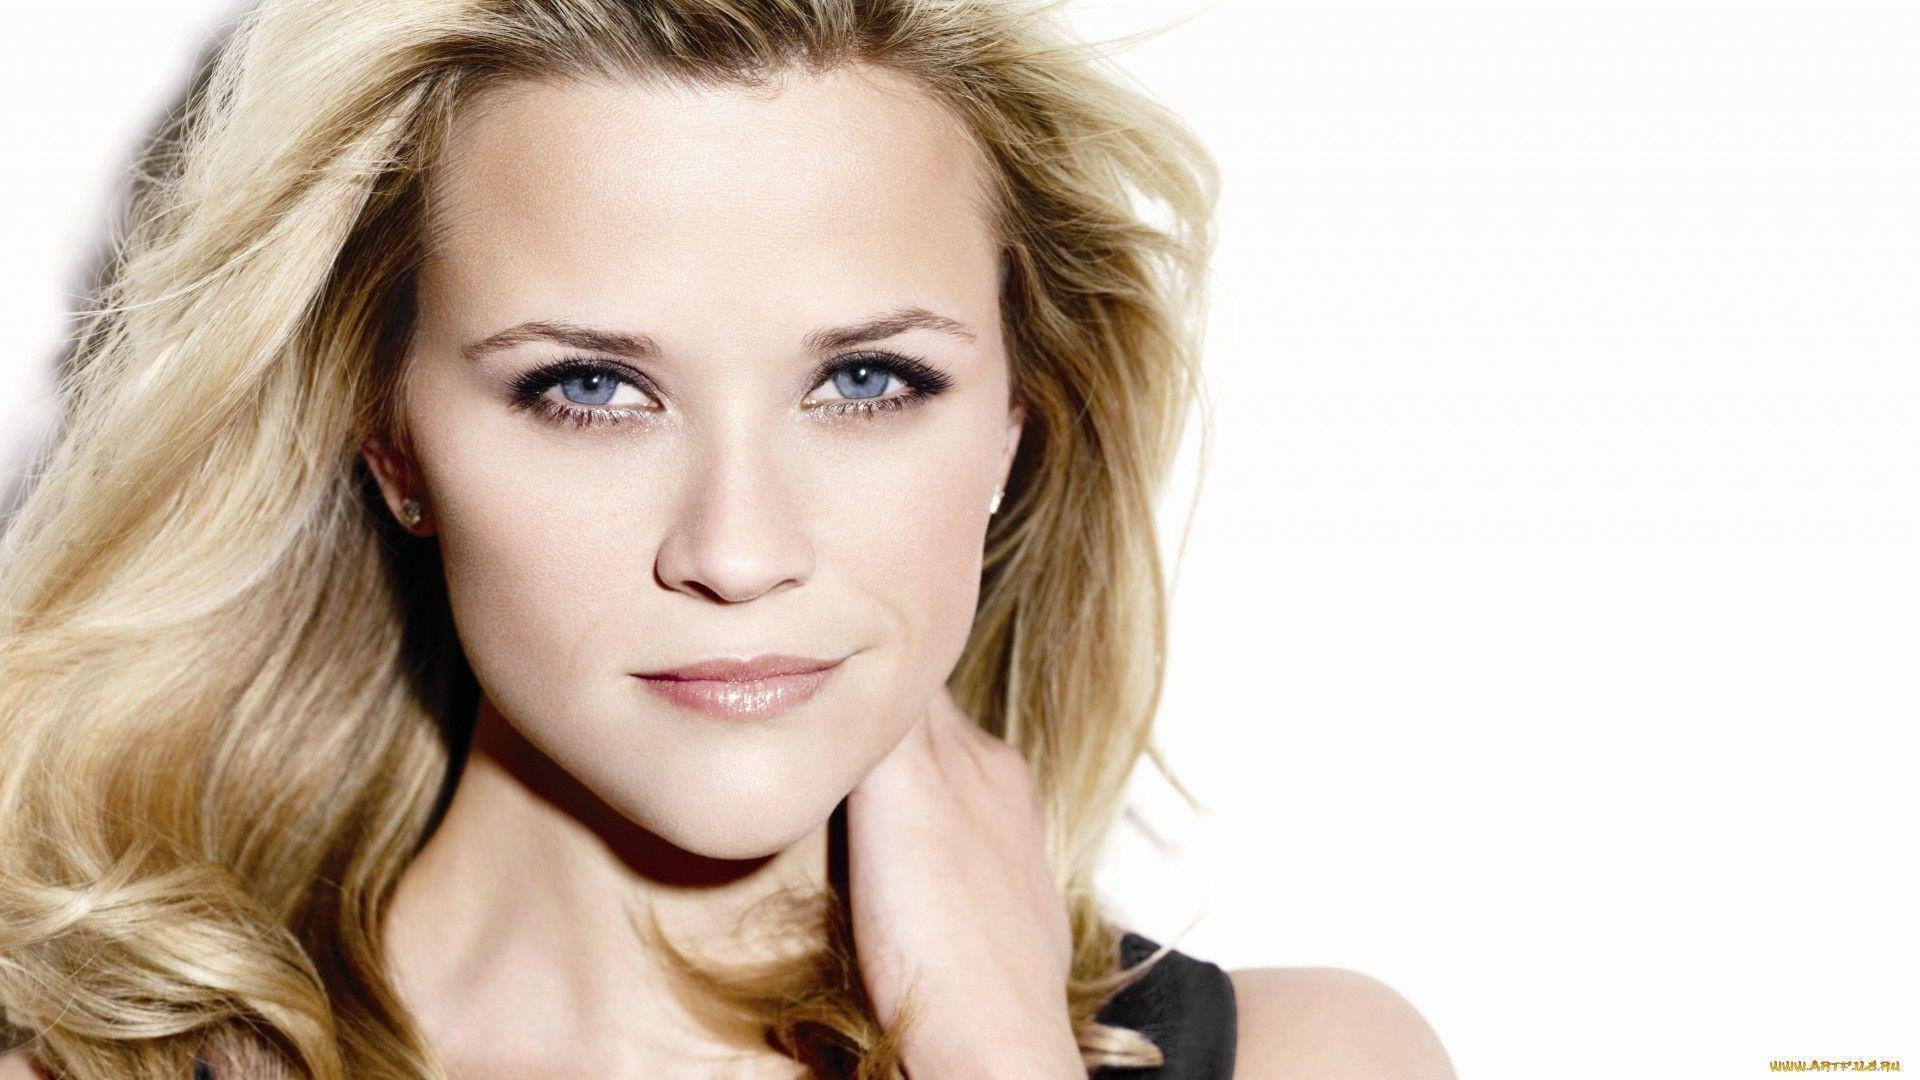 YOR17: Reese Witherspoon Wallpapers, Reese Witherspoon Pics in ...